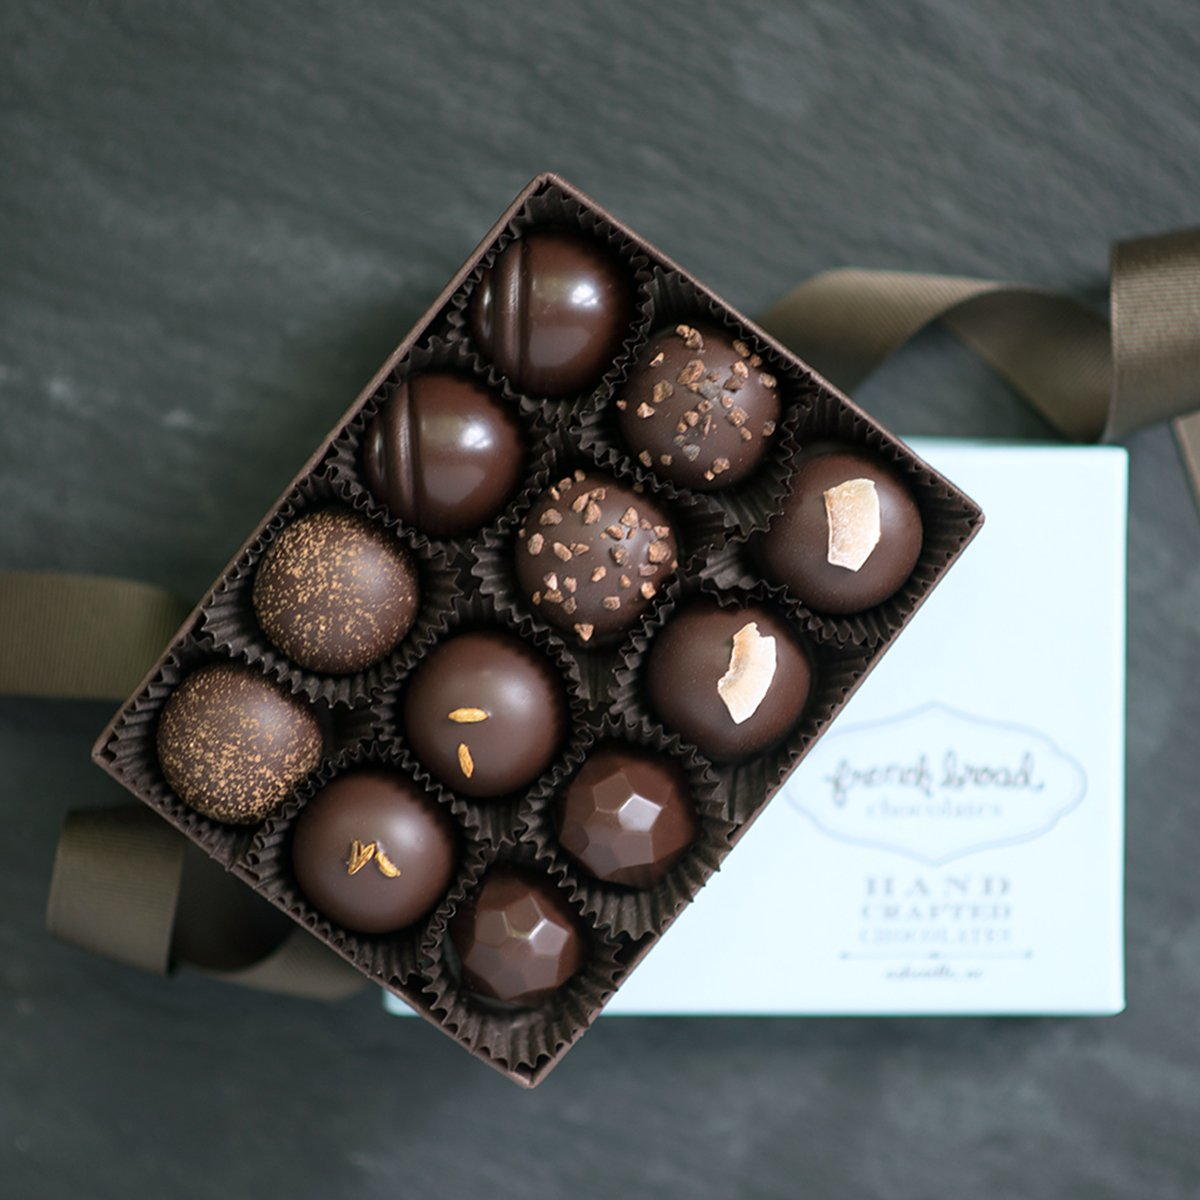 .@MeganGiller share her favorite coconut milk chocolates & a chance to win vegan truffles! https://t.co/kkJqZR9N5Q https://t.co/mp69ArFbUO